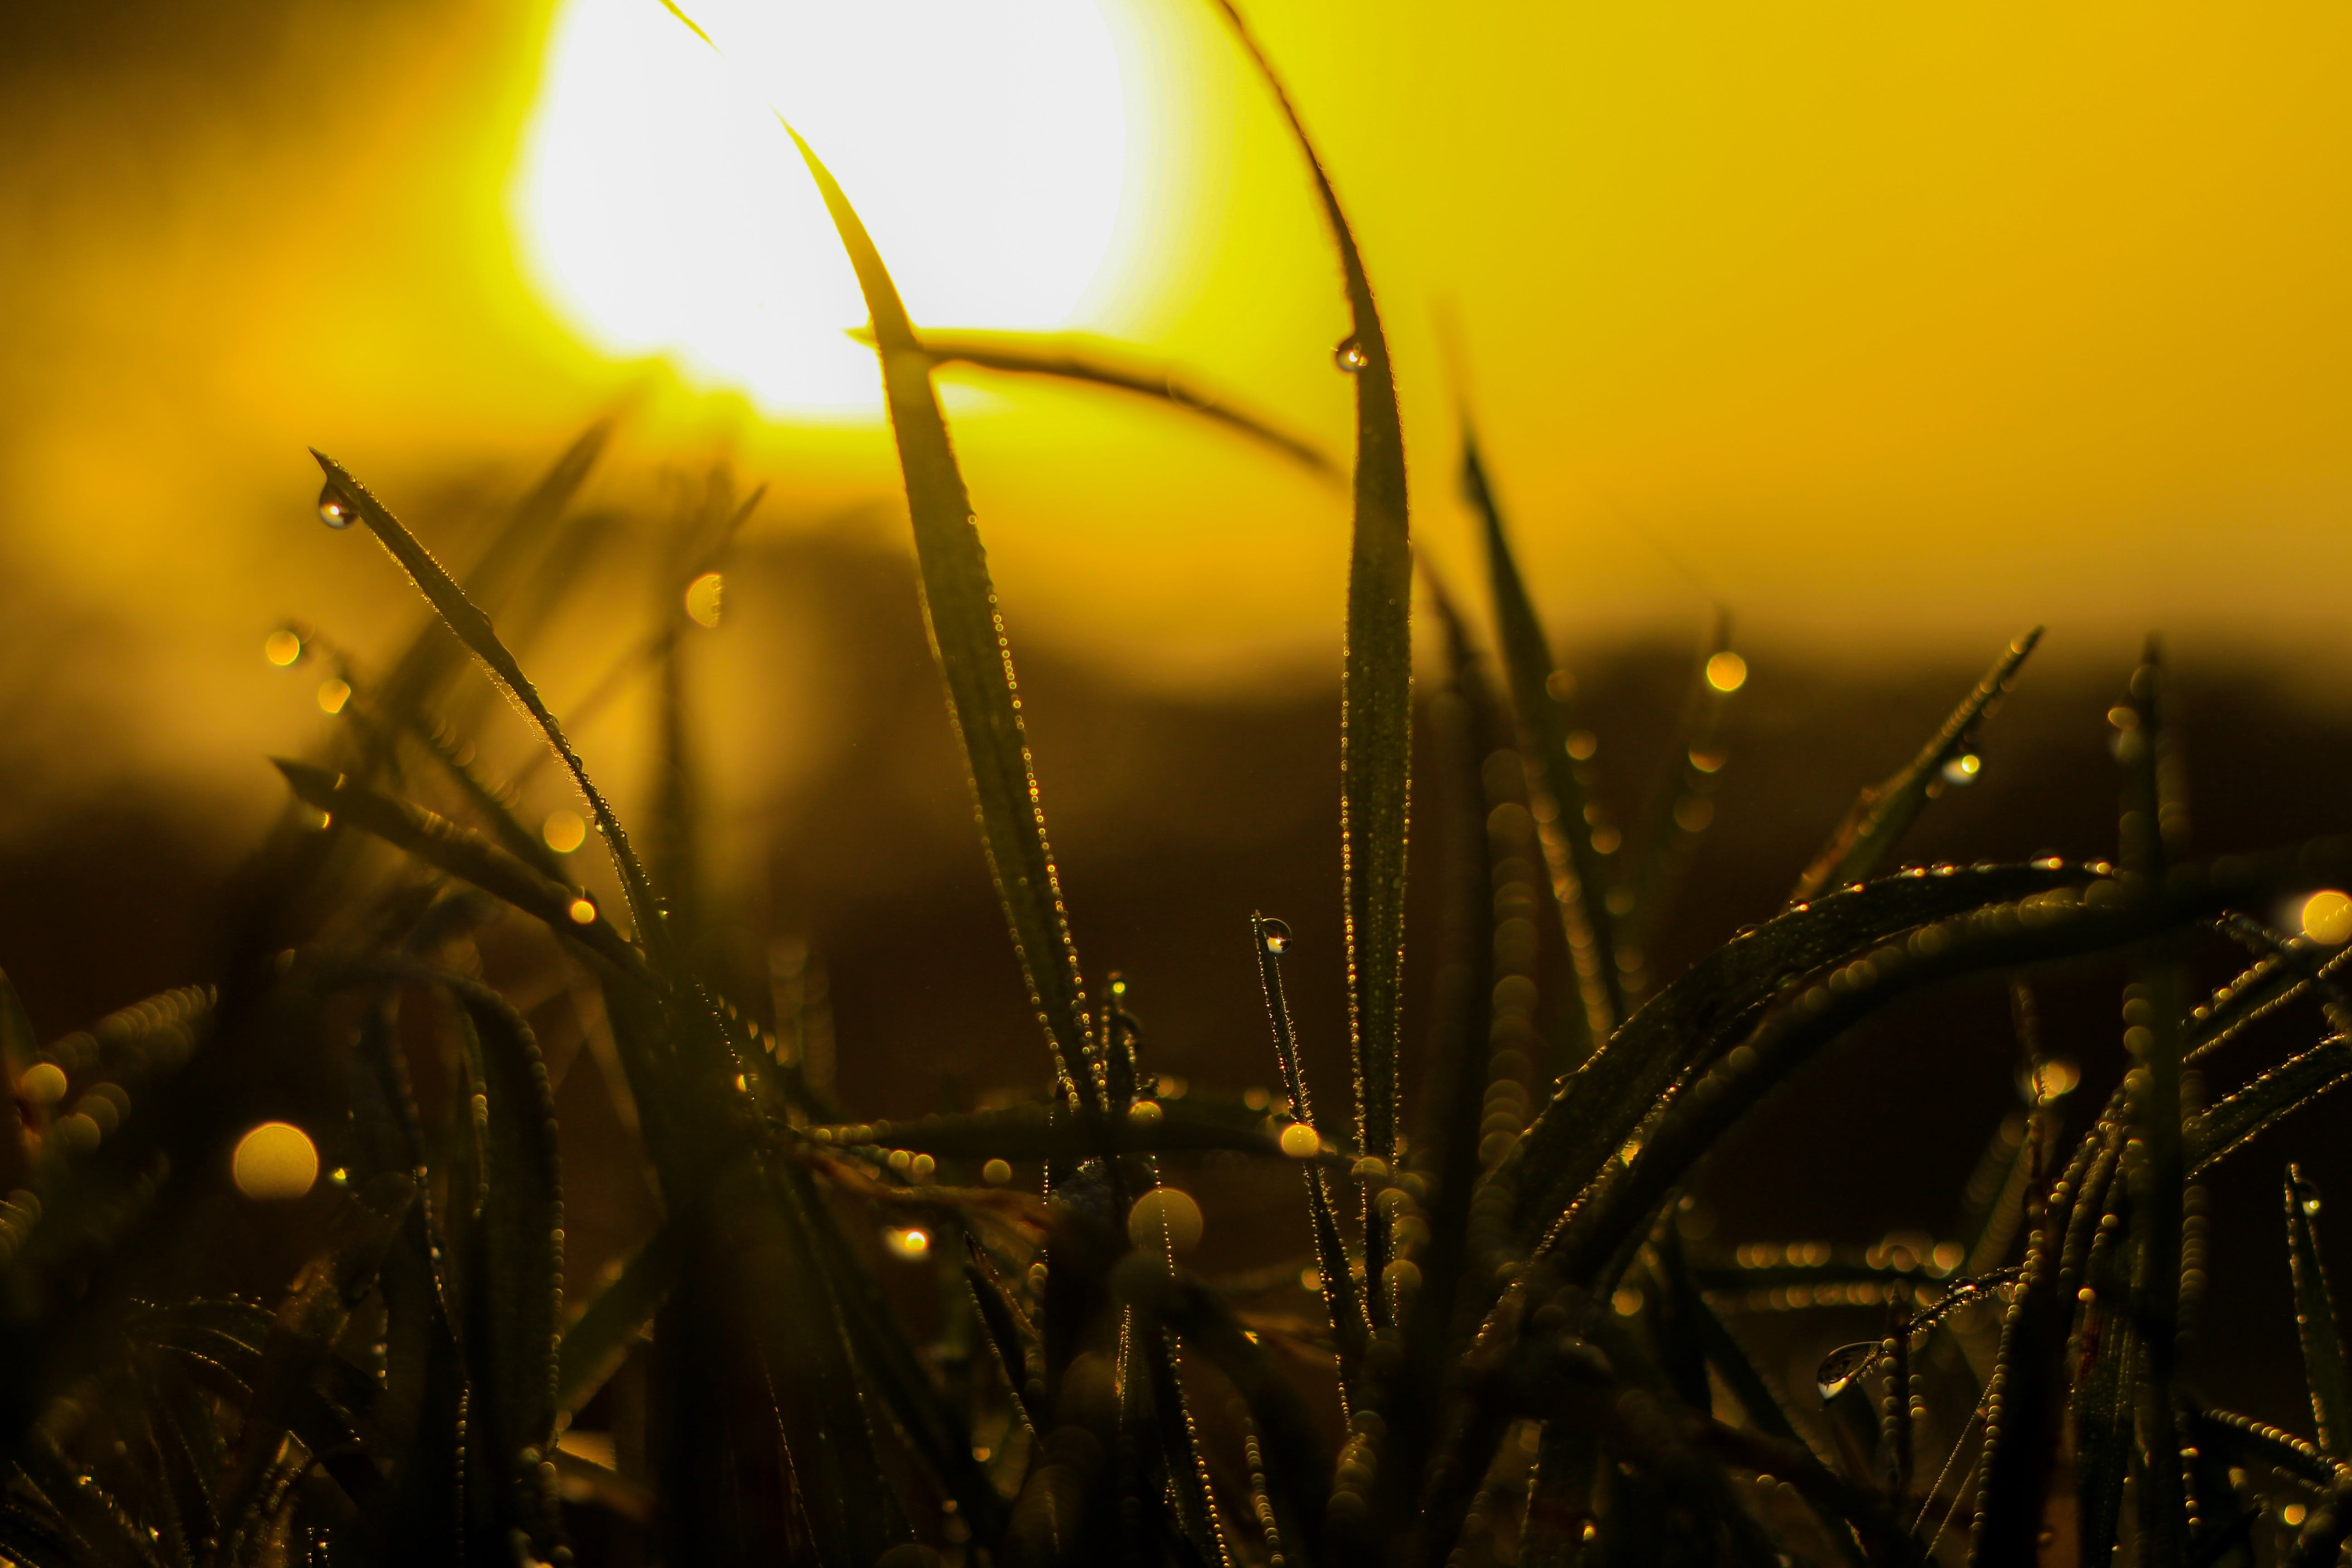 Macro Photography of Grass With Water Dew